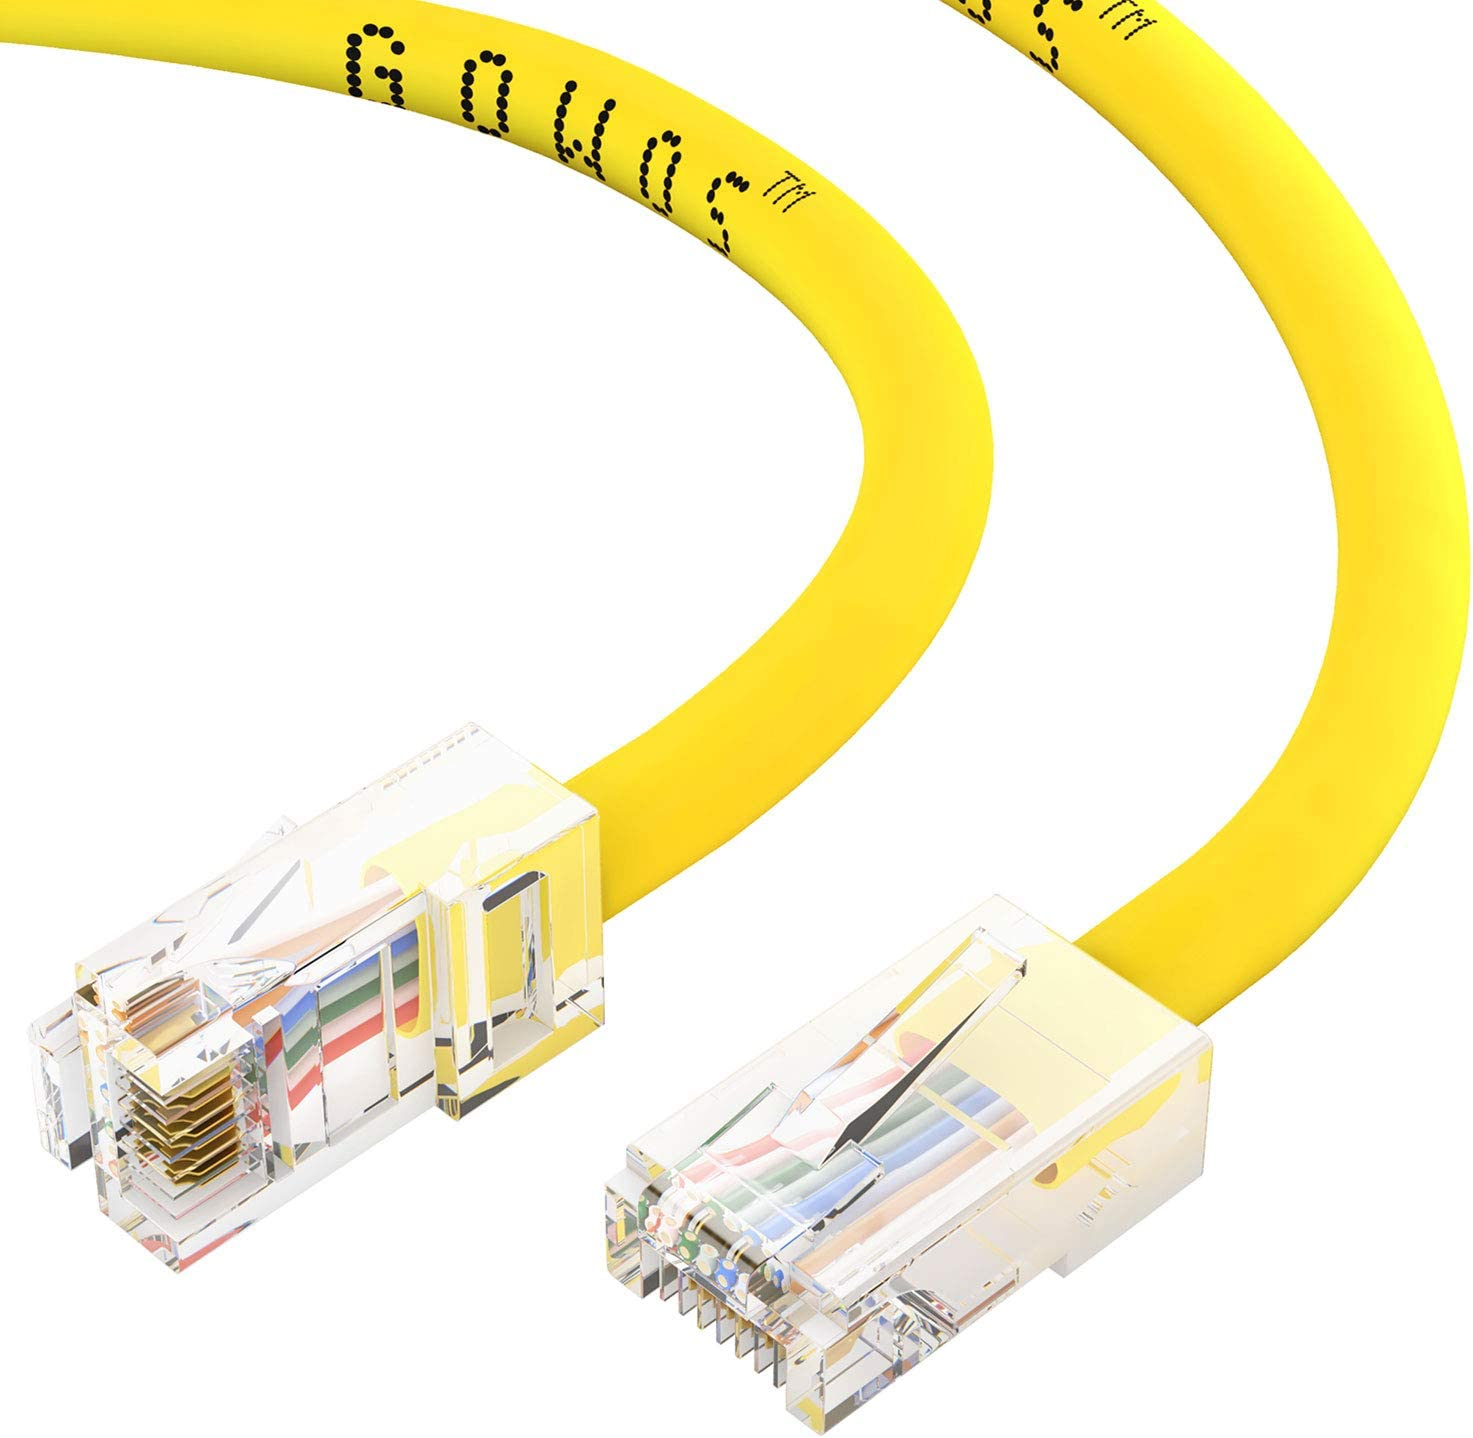 CABLECHOICE 5-Pack Available 28 Lengths and 10 Colors Cat5e Ethernet Cable UTP Computer Network Cable with Bootless Connector RJ45 10Gbps High Speed LAN Internet Patch Cord 14 Feet - Yellow